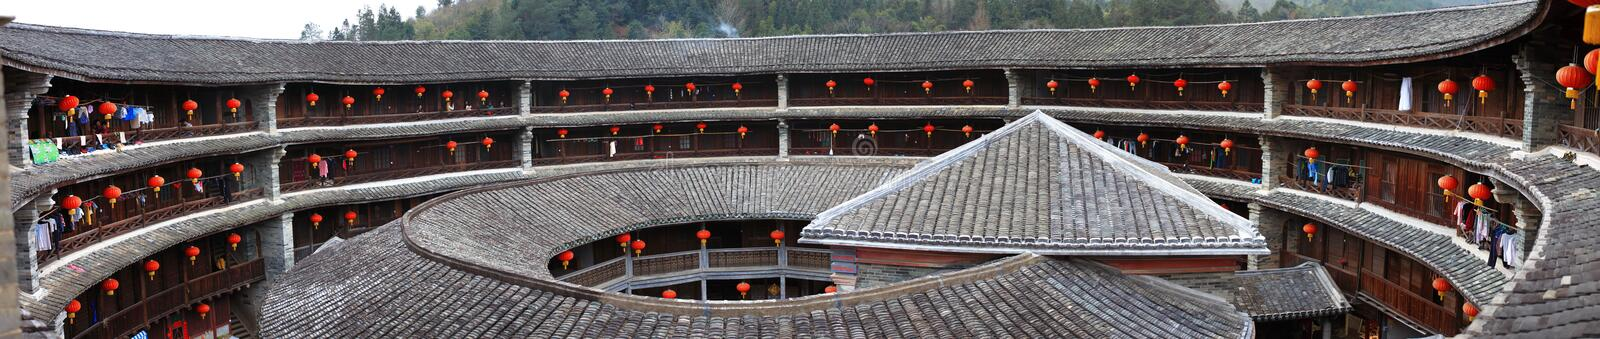 Fujian earthen structures royalty free stock photo